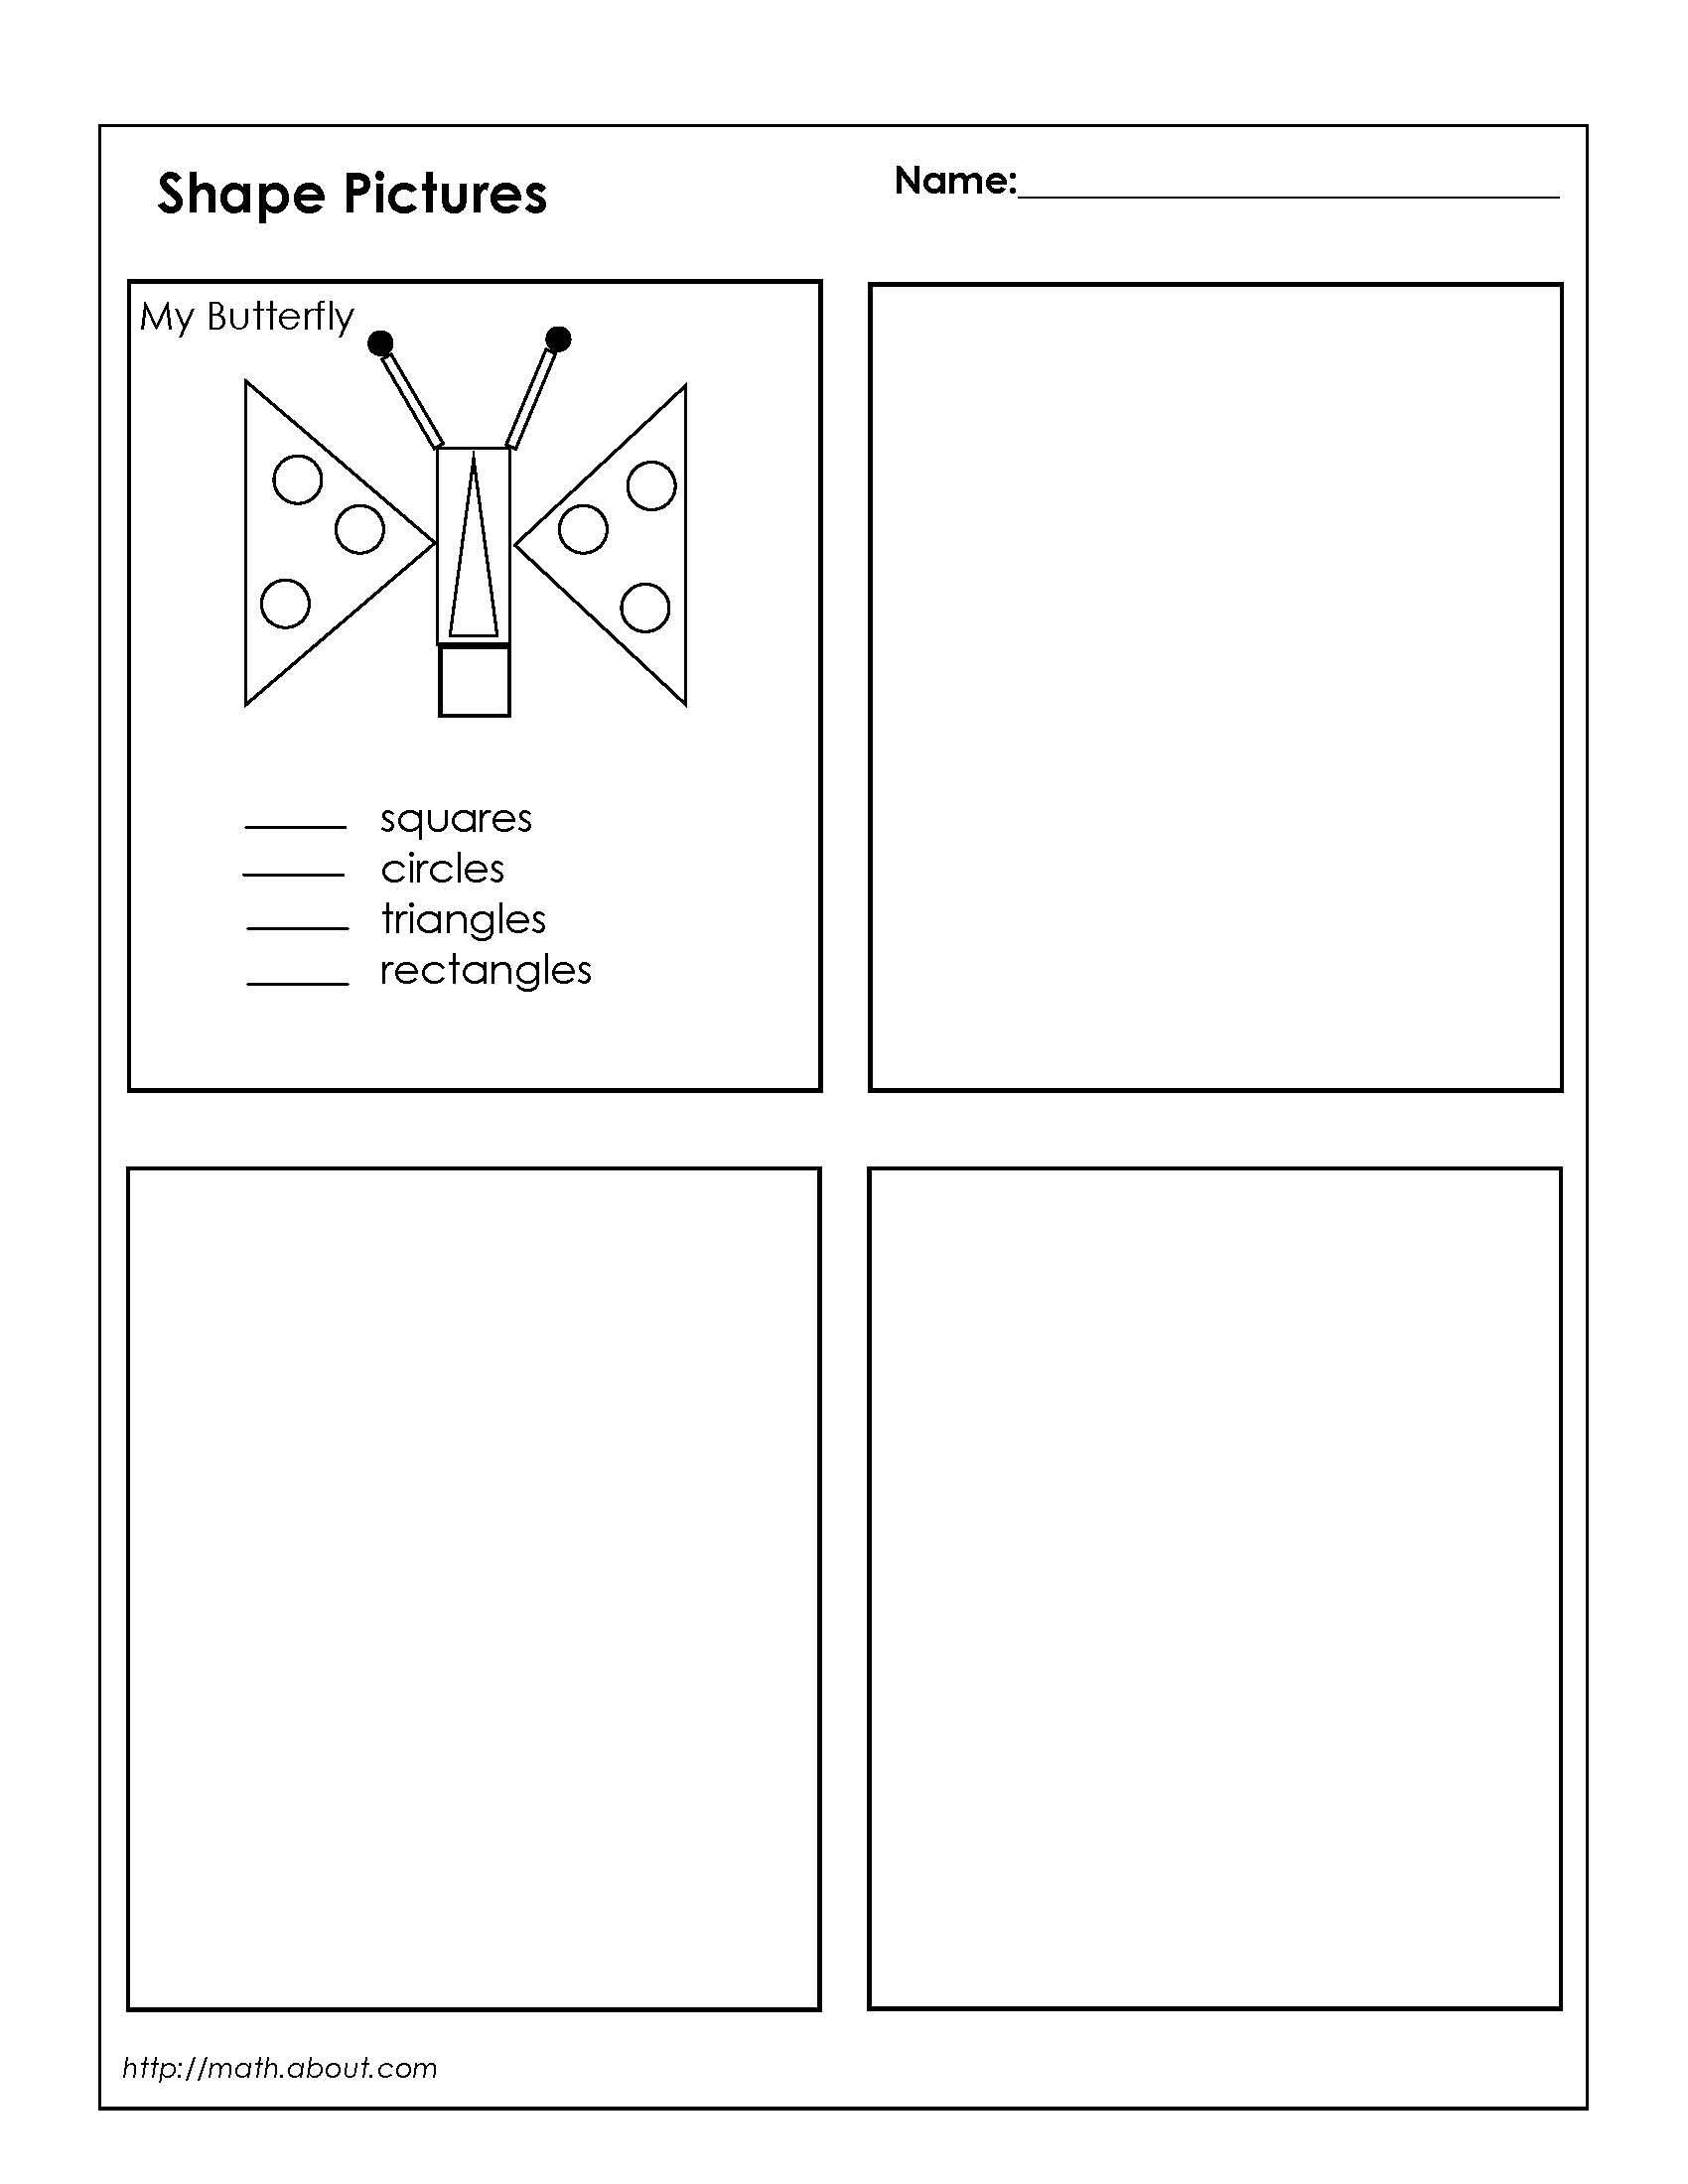 Worksheet For Special Right Triangles